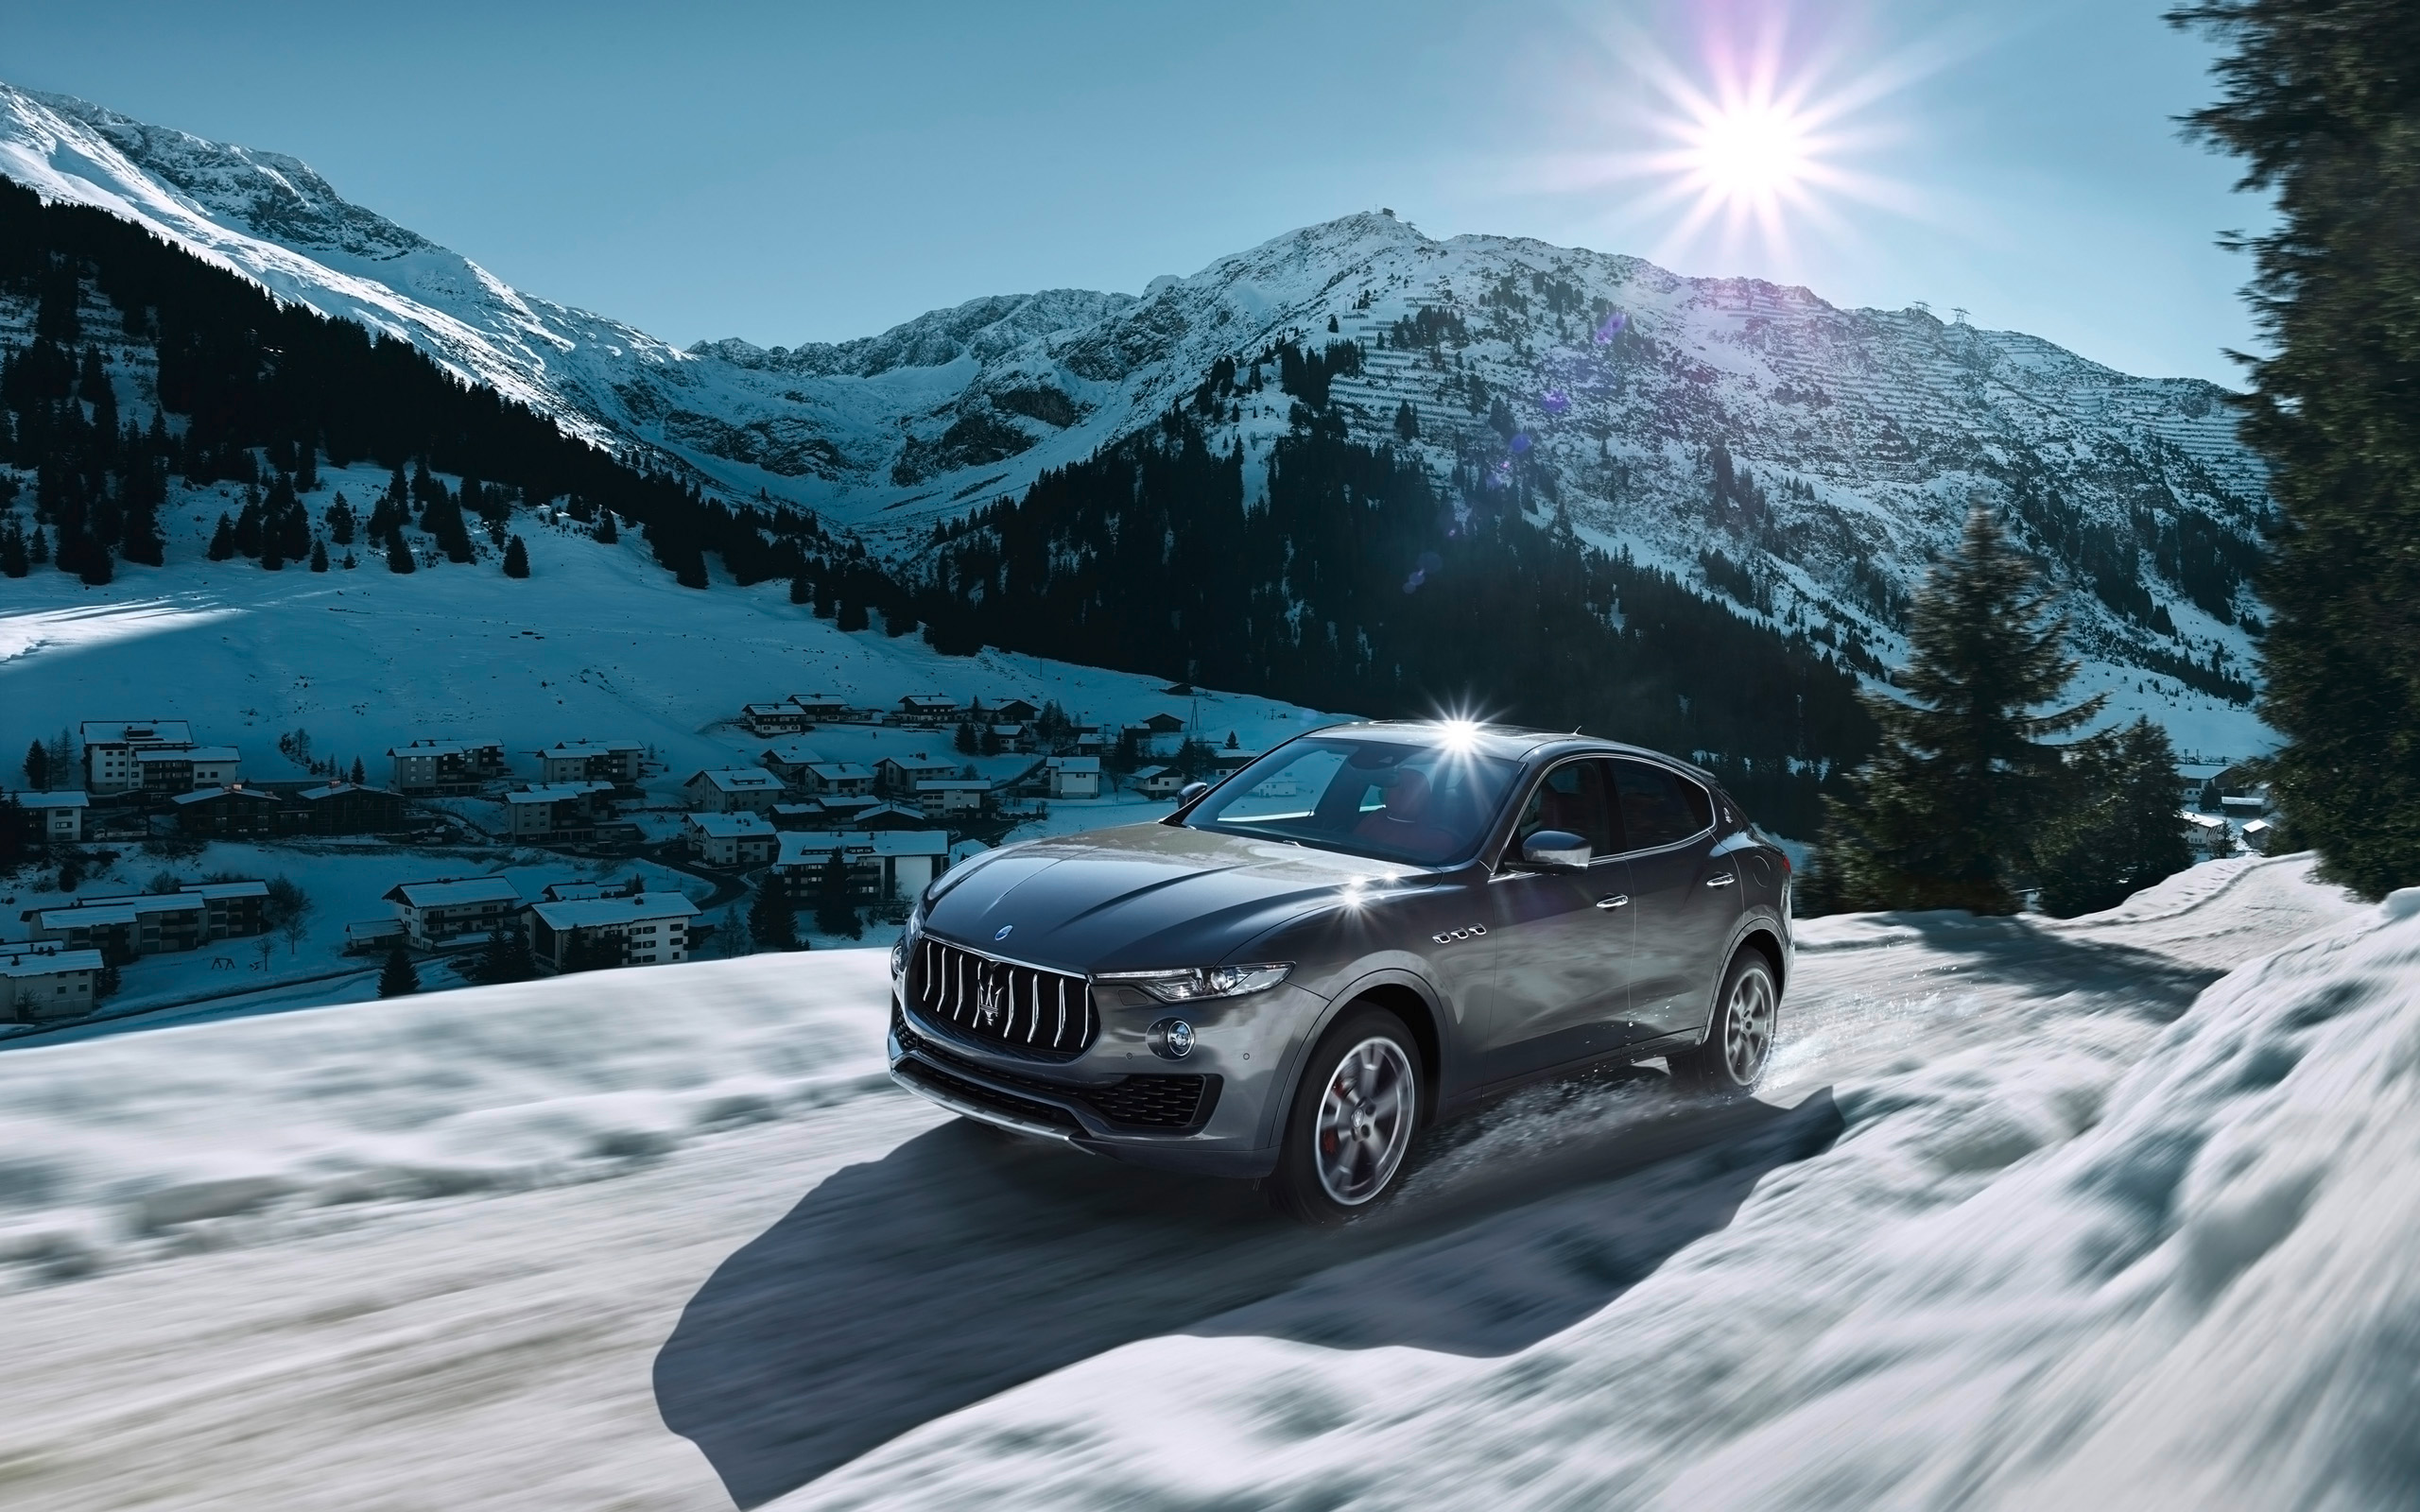 2016 Maserati Levante Wallpaper Hd Car Wallpapers